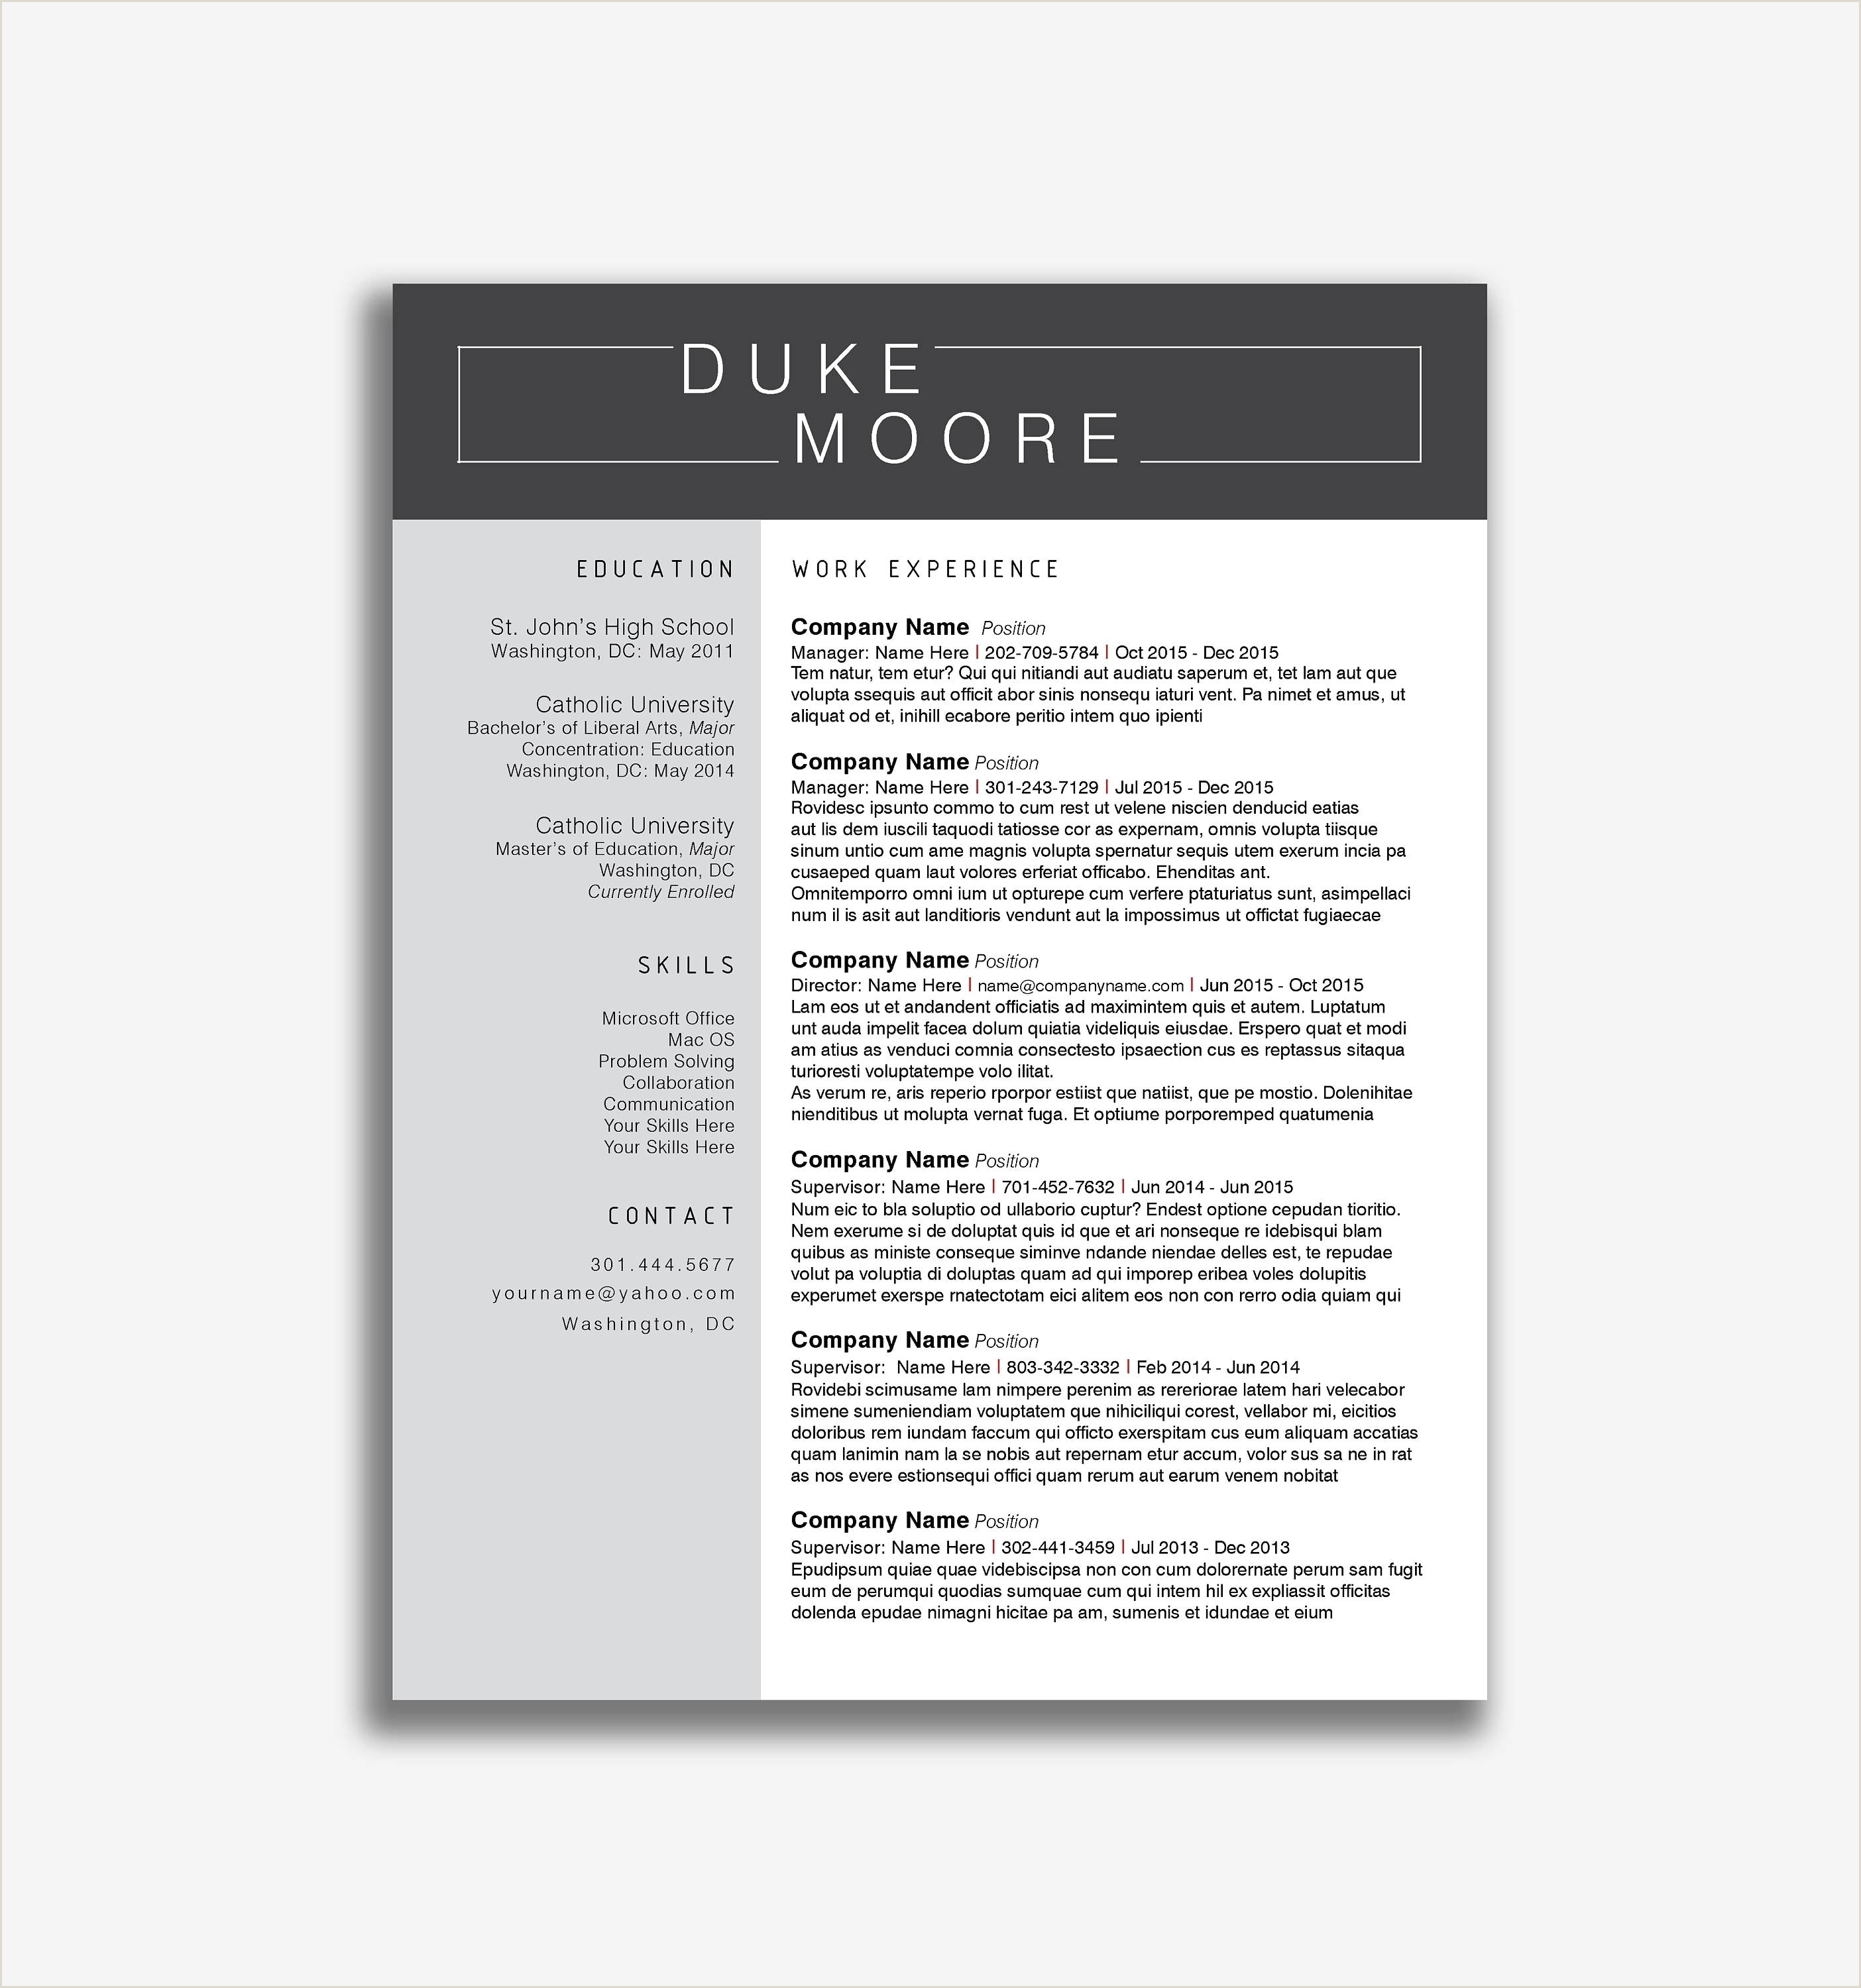 Food and Beverage Resume Elementary Teaching Resume Template New Elementary Teacher